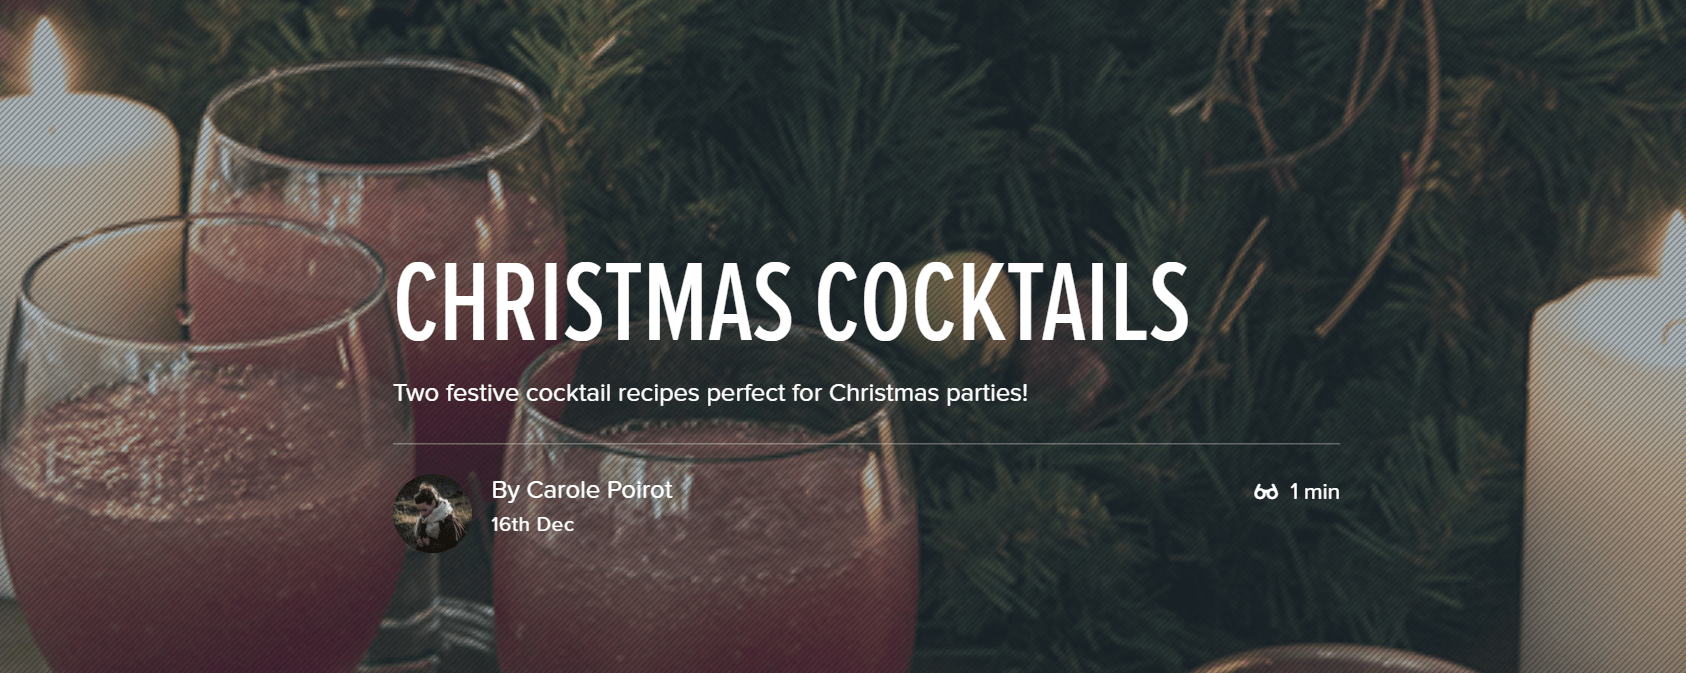 Christmas cocktail recipes Ecommerce Content Marketing Examples